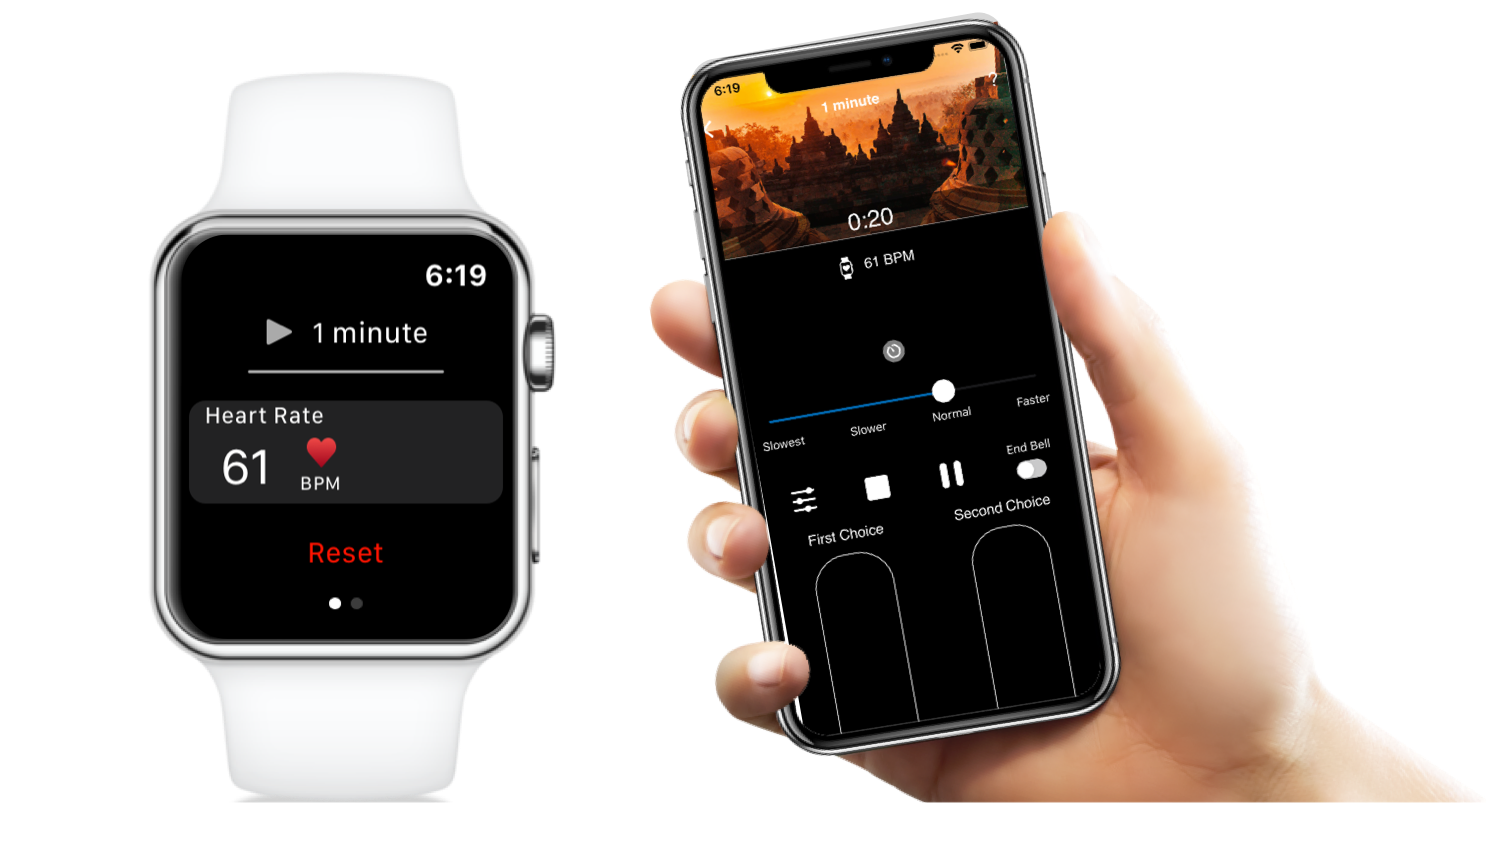 MindFlow Guided Meditation App - Apple Watch pacing